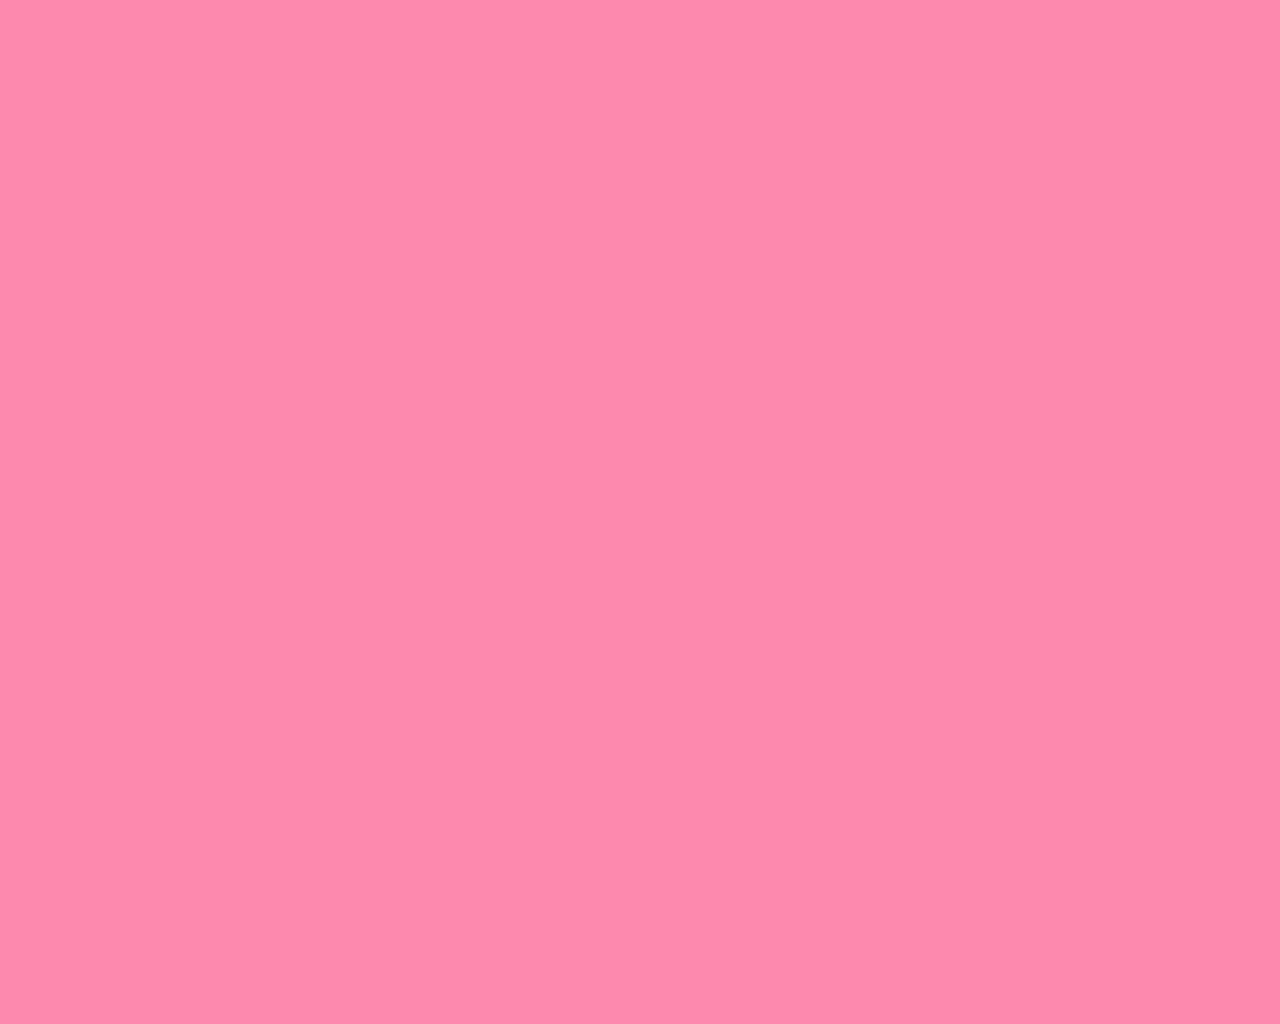 1280x1024 Tickle Me Pink Solid Color Background